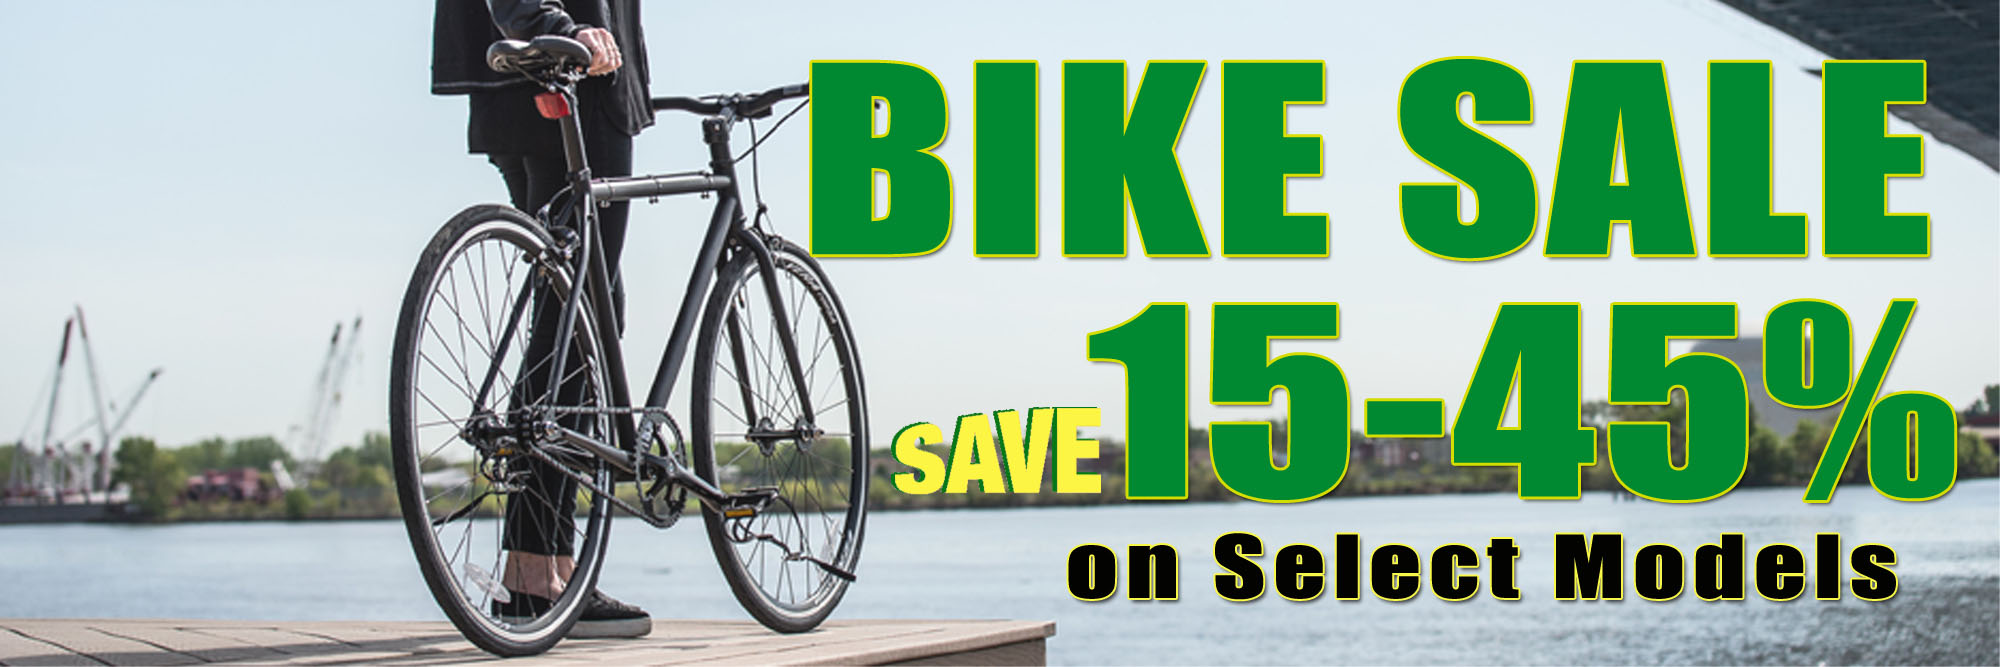 Bike Sale at Kozy's Cyclery